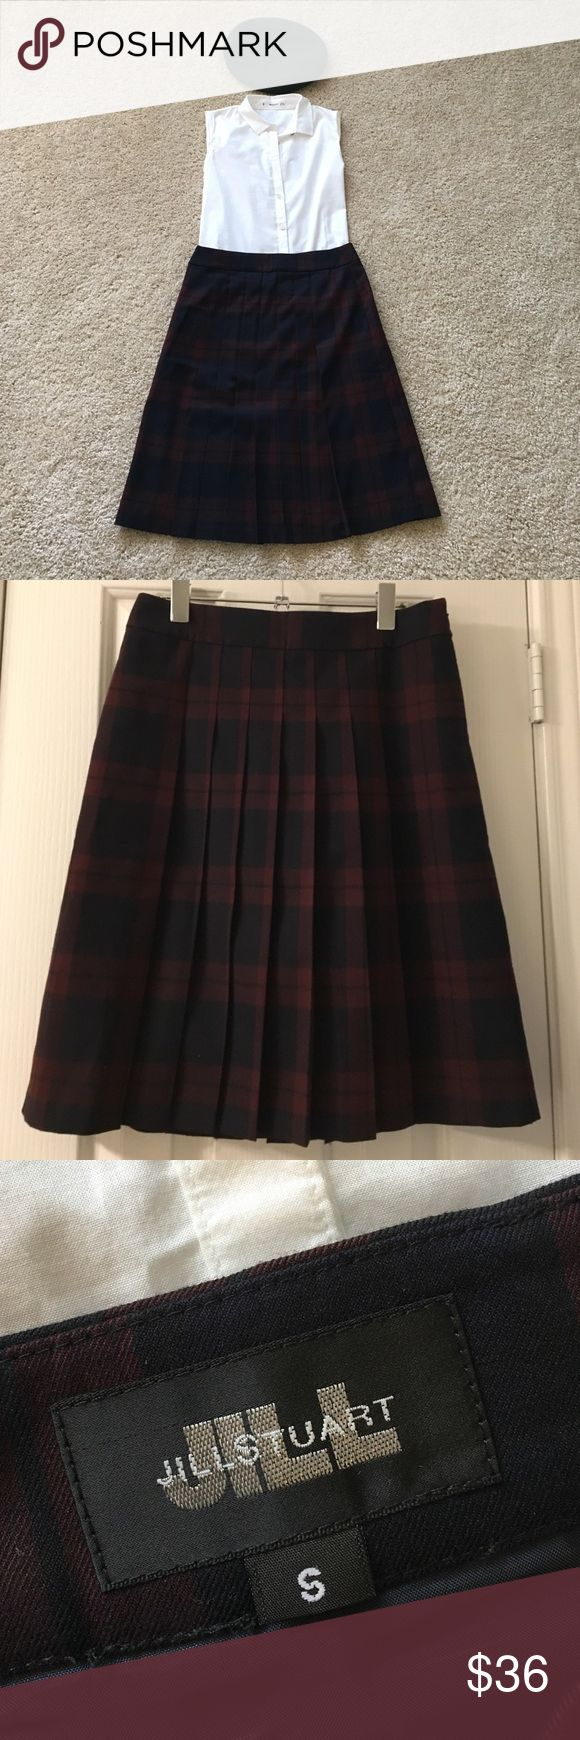 Tartan plaid pleated skirt Jill Stuart plaid pleated skirt. Worn once or twice, in excellent condition, nice material.Sad to let it go but it is a tad too big for me. :( Make me an offer! Jill Stuart Skirts Midi